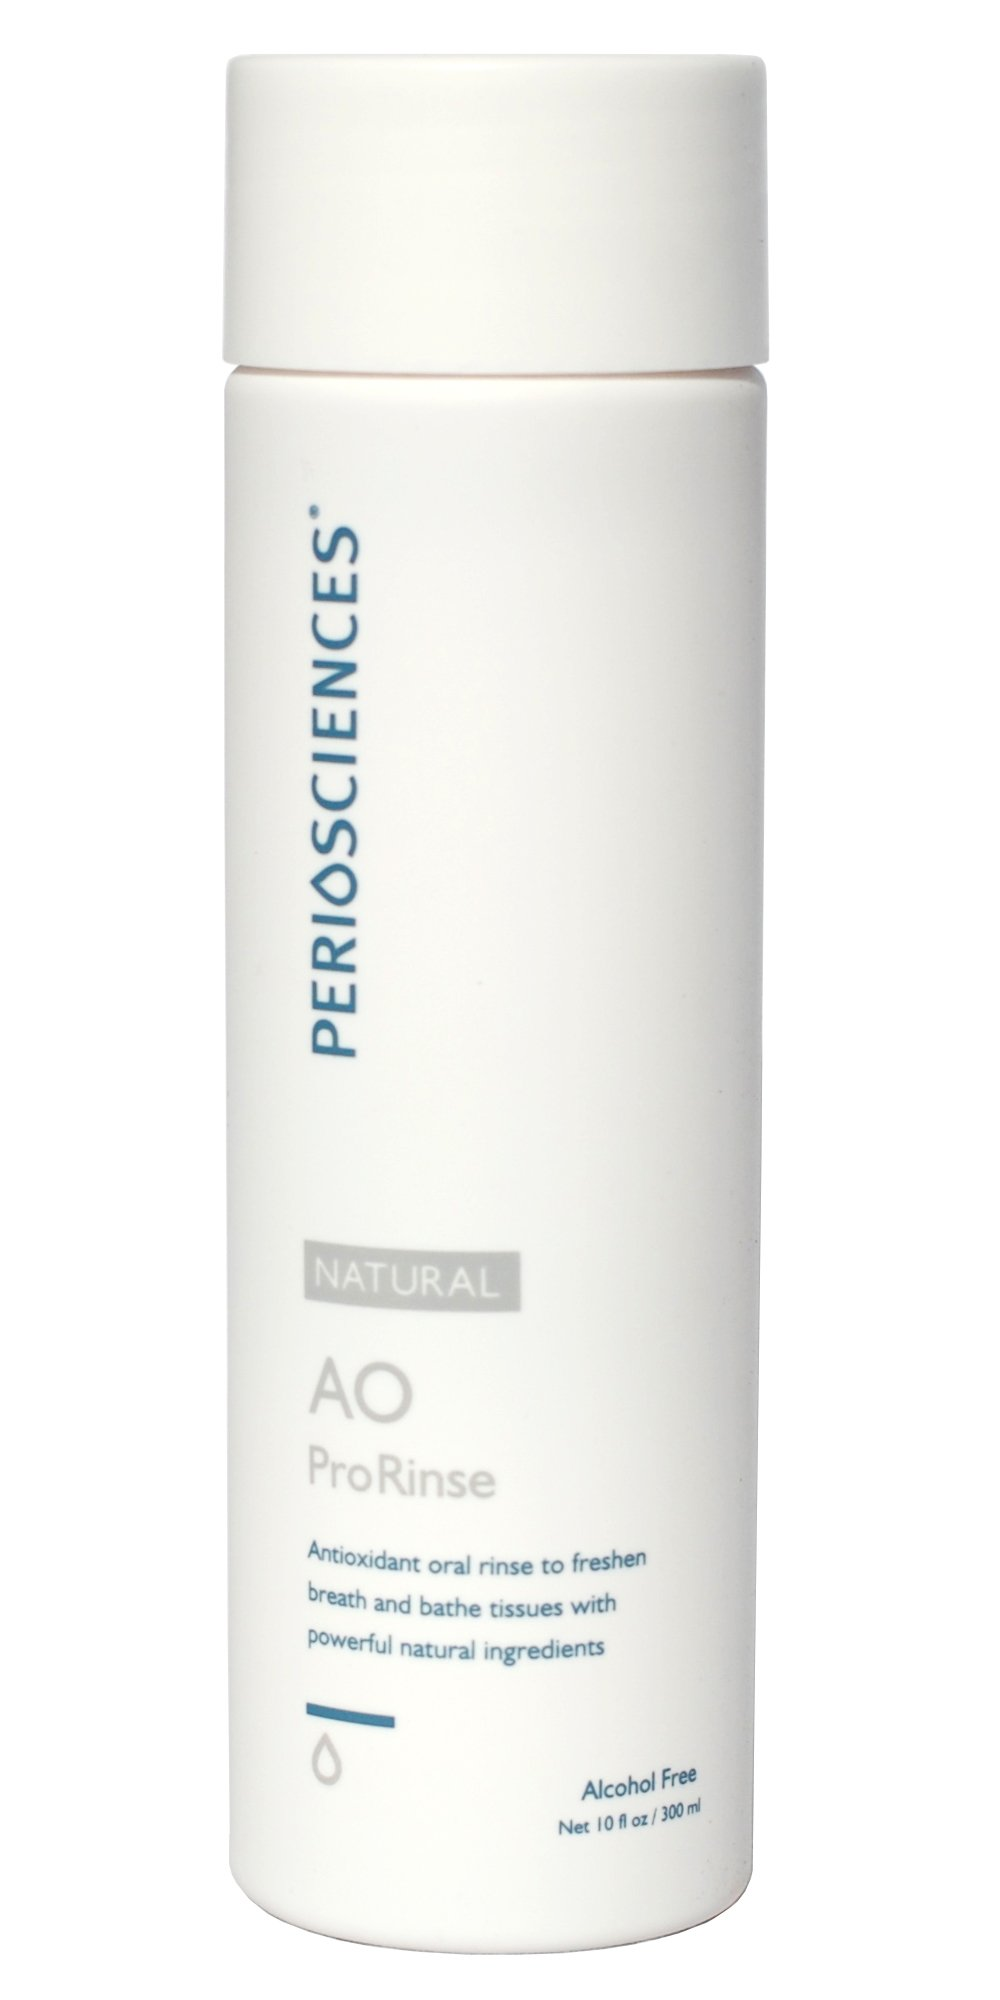 Fluoride Free Mouthrinse with Natural Antioxidants By Periosciences (10 Fl Oz Bottle) - Premium Organic Non Fluoride Mouthwash Without Alcohol - Contains Xylitol - Freshens Breath and Soothes Tissues - Achieve Your Best Oral Health!